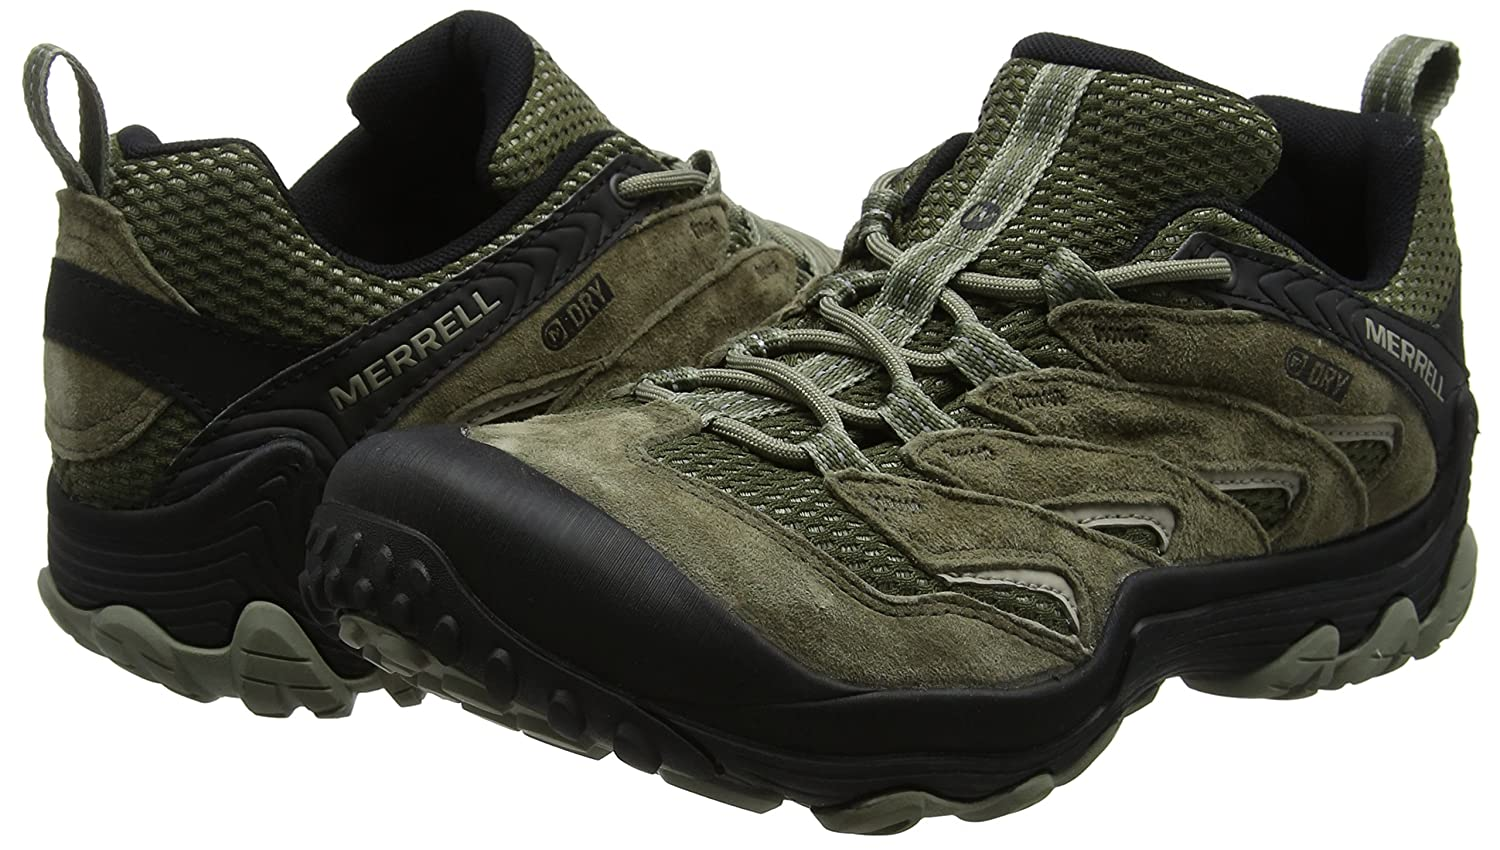 Amazon.com | Merrell Chameleon 7 Limit WTPF Walking Shoes 9.5 D(M) US Dusty Olive | Hiking Shoes